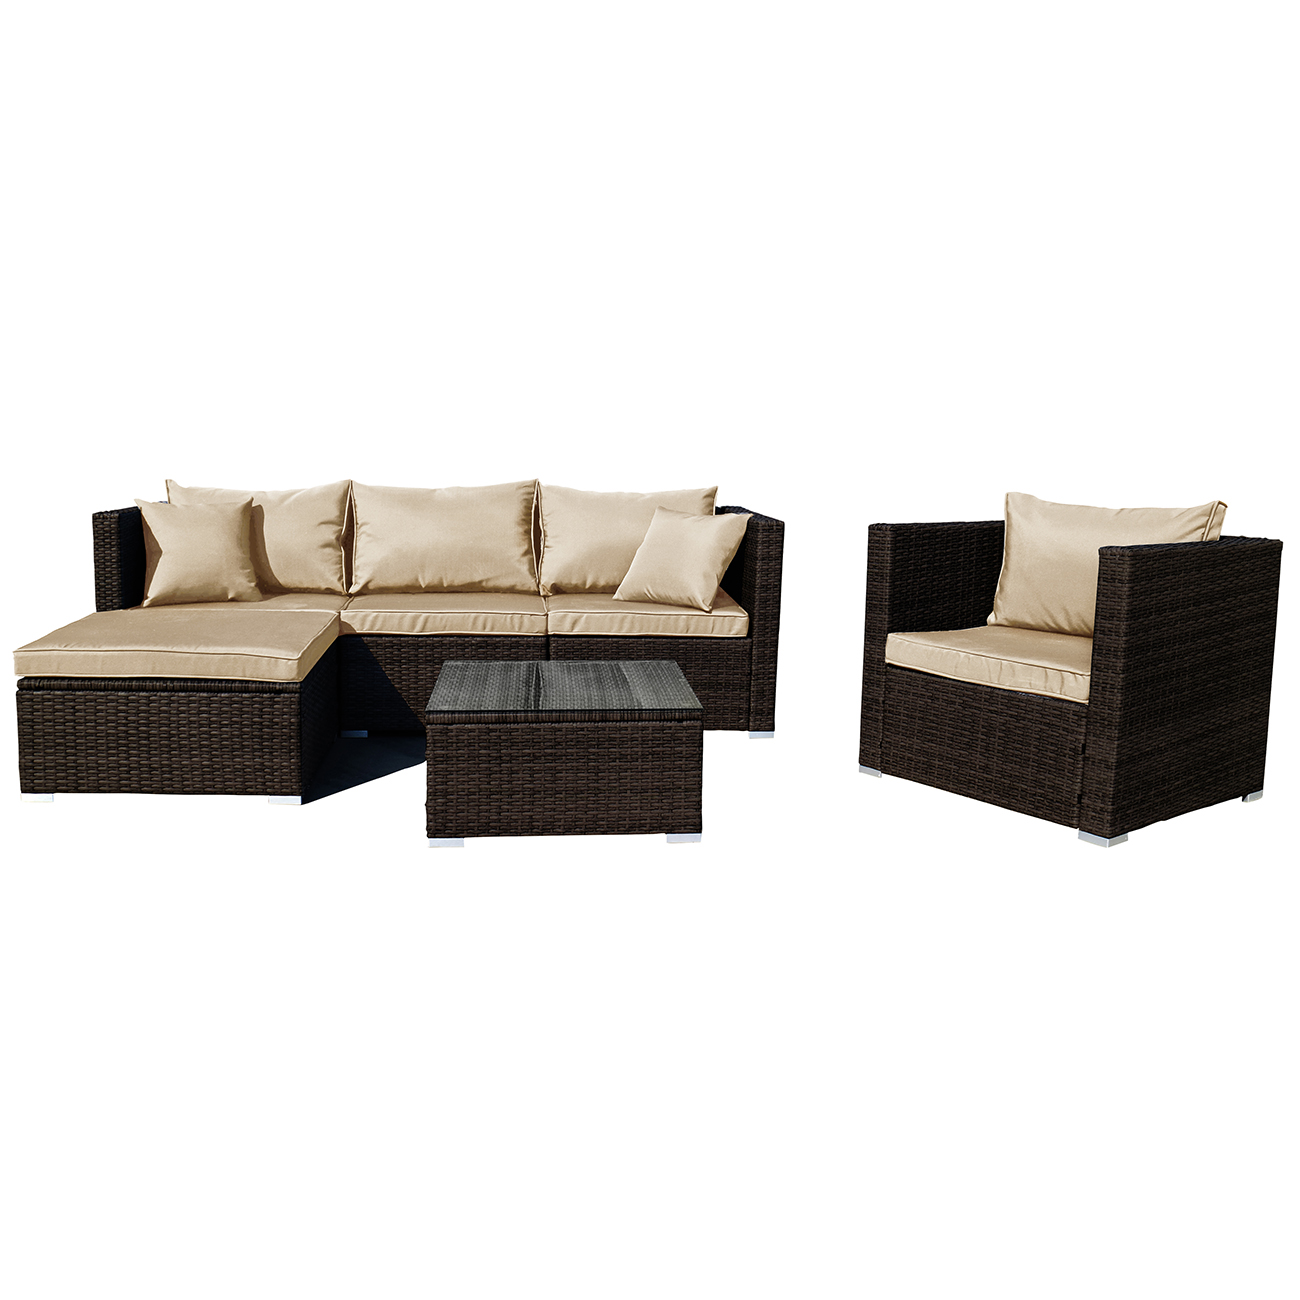 patio furniture rattan wicker sectional sofa chair couch brown gray